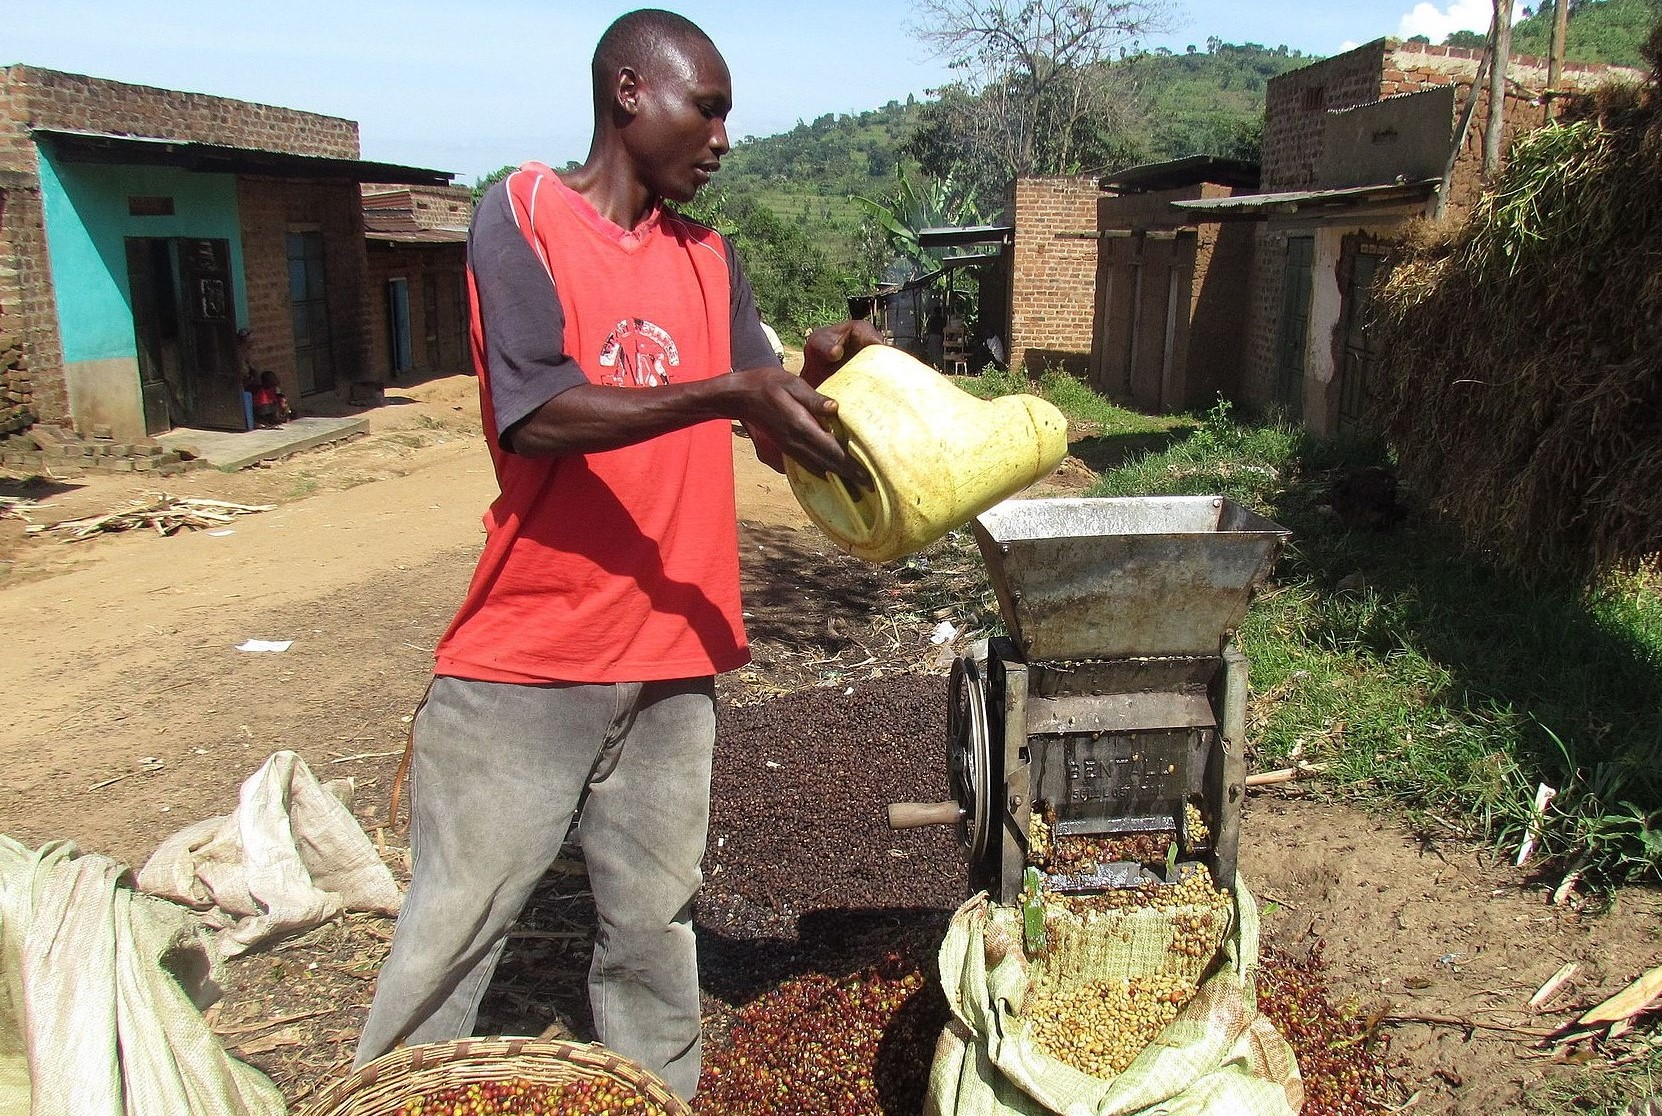 Smallholder Supply Chains in Africa